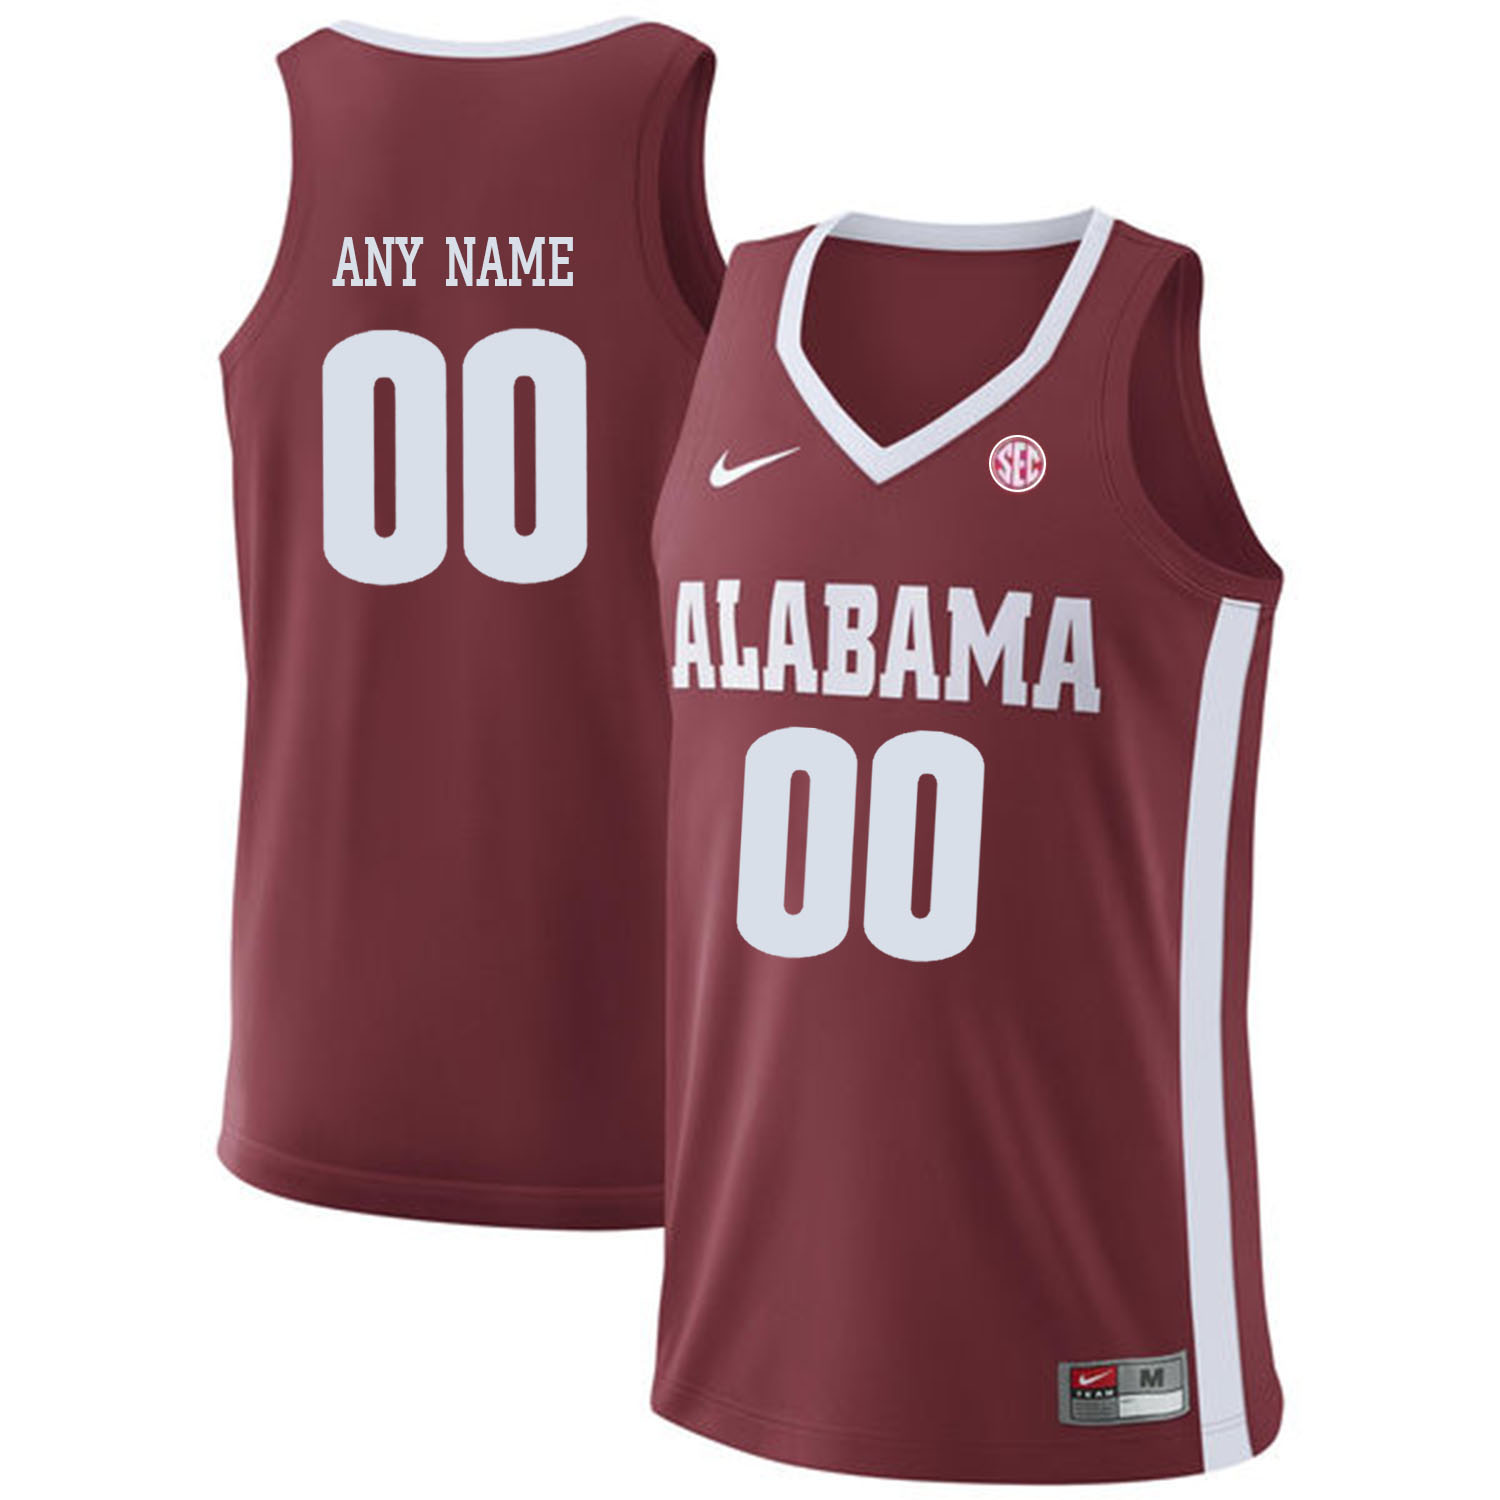 Alabama Crimson Tide Red Men's Customized College Basketball Jersey